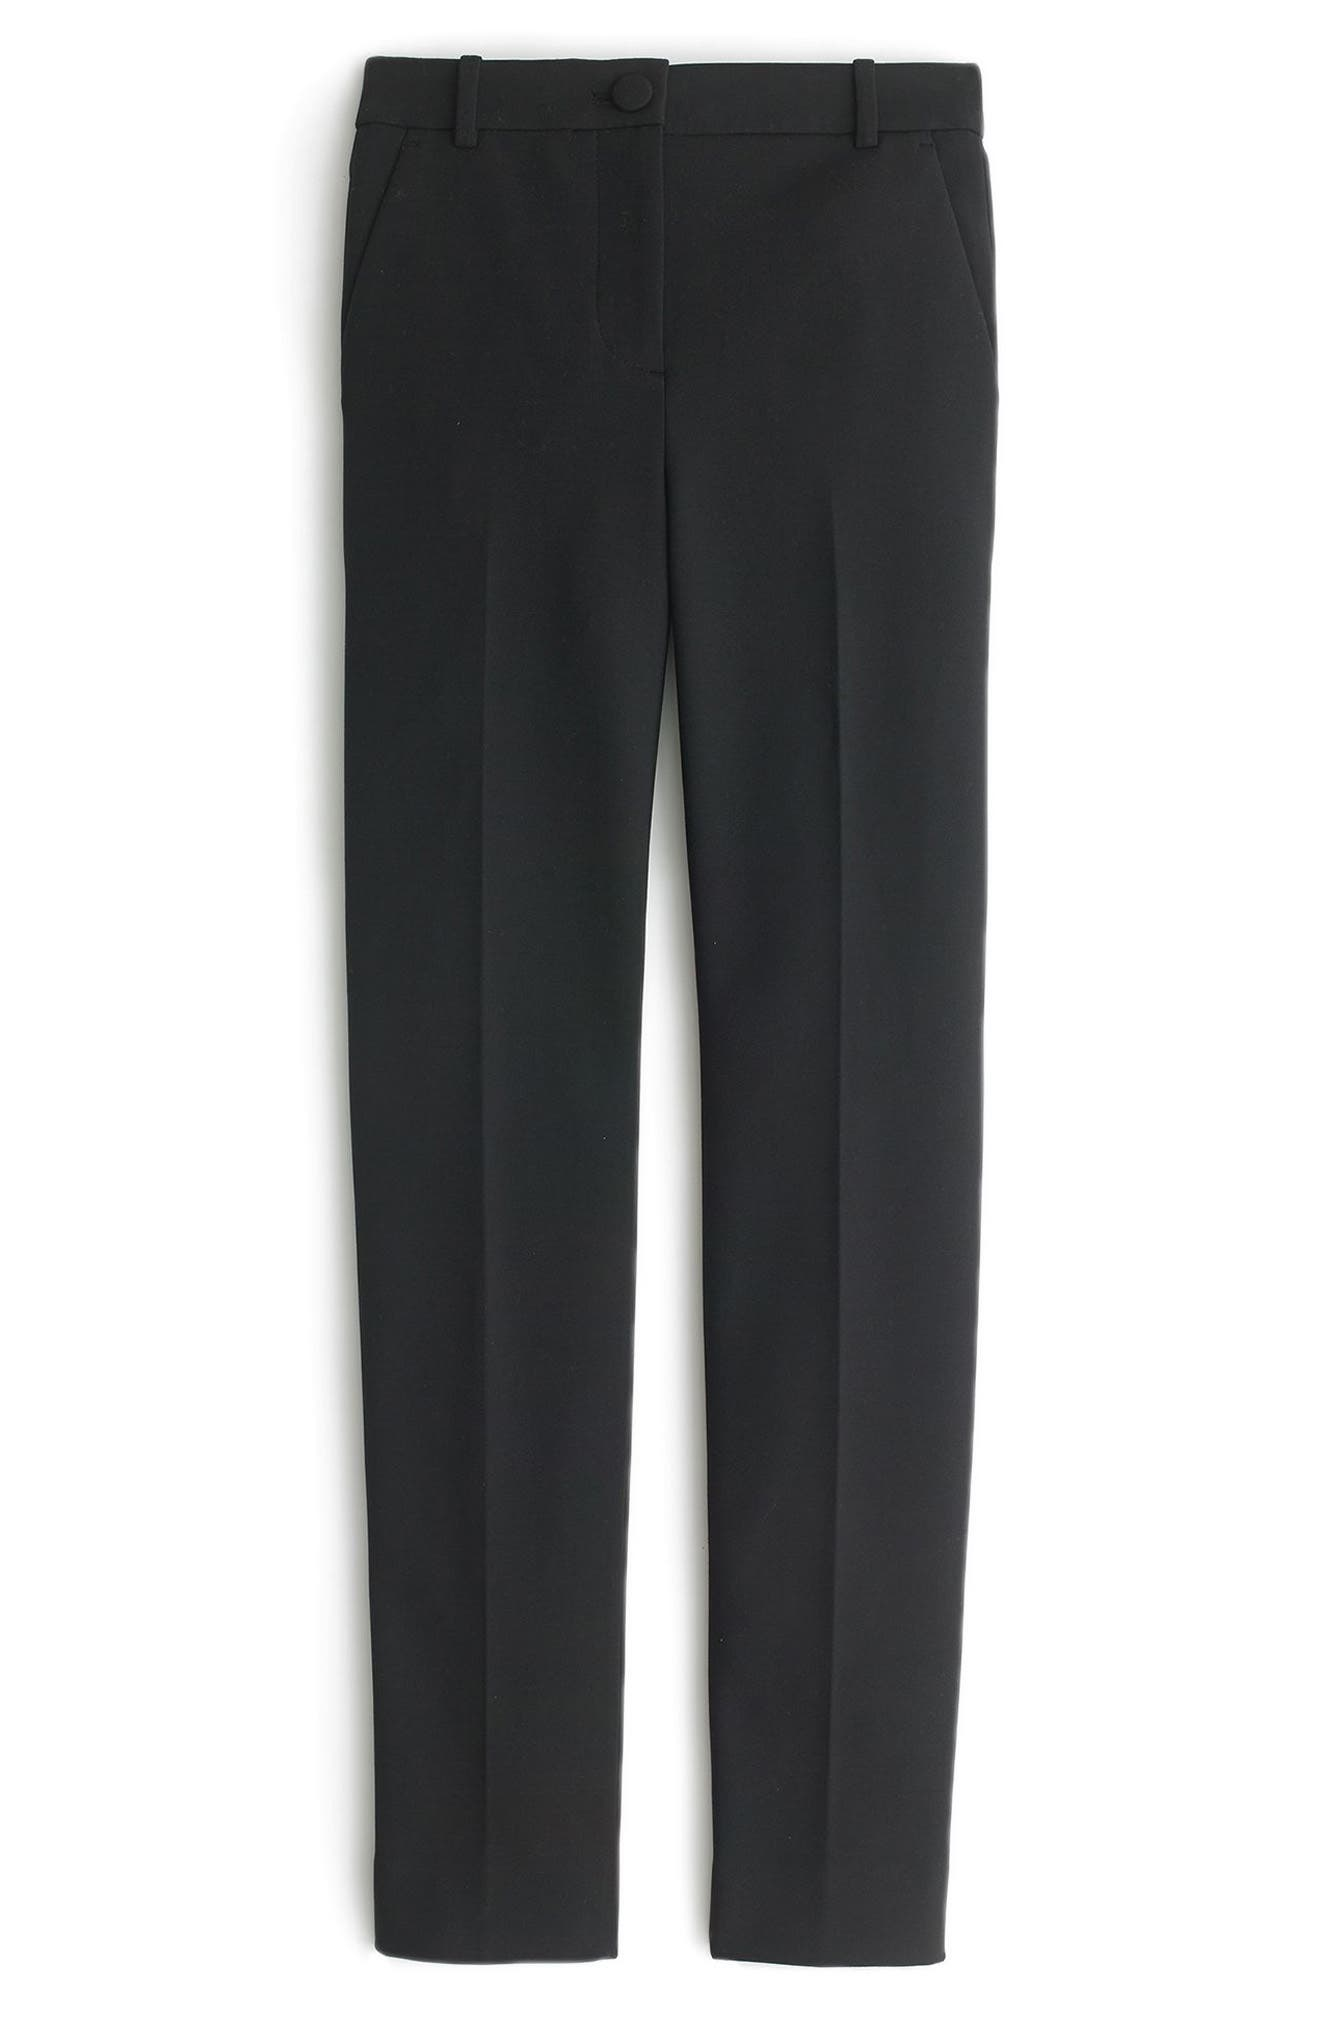 J.Crew Cameron Seasonless Stretch Pants (Regular & Petite)